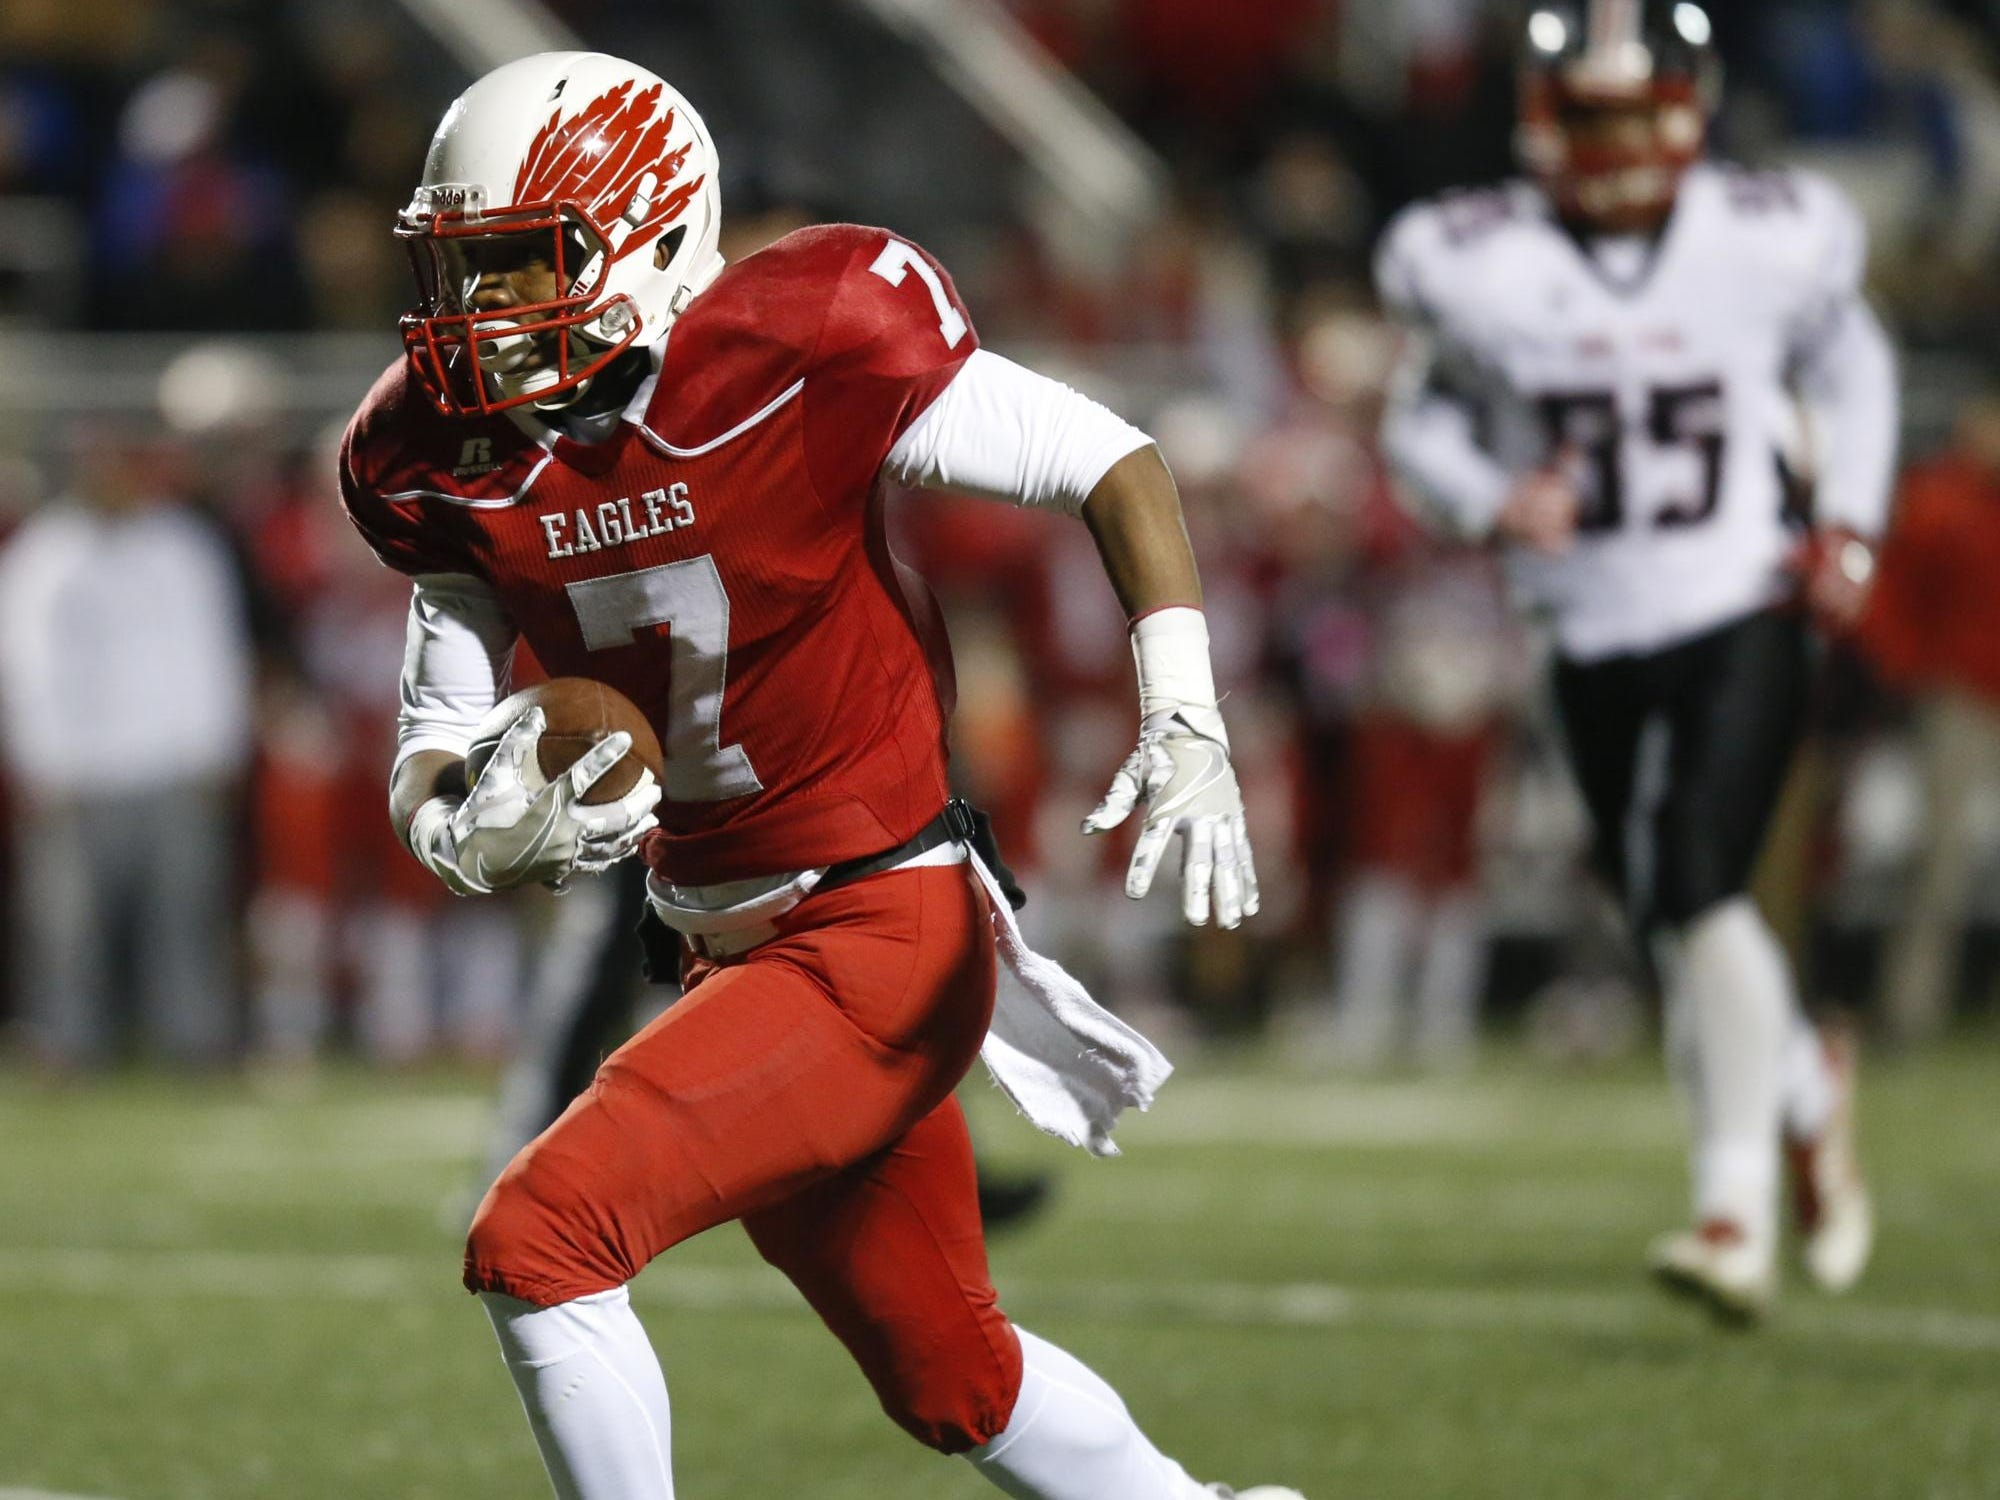 Smyrna receiver Stephen Whaley scores untouched on a 27-yard touchdown reception in the second quarter of a DIAA Division I state tournament semifinal against William Penn Friday at Smyrna High School.